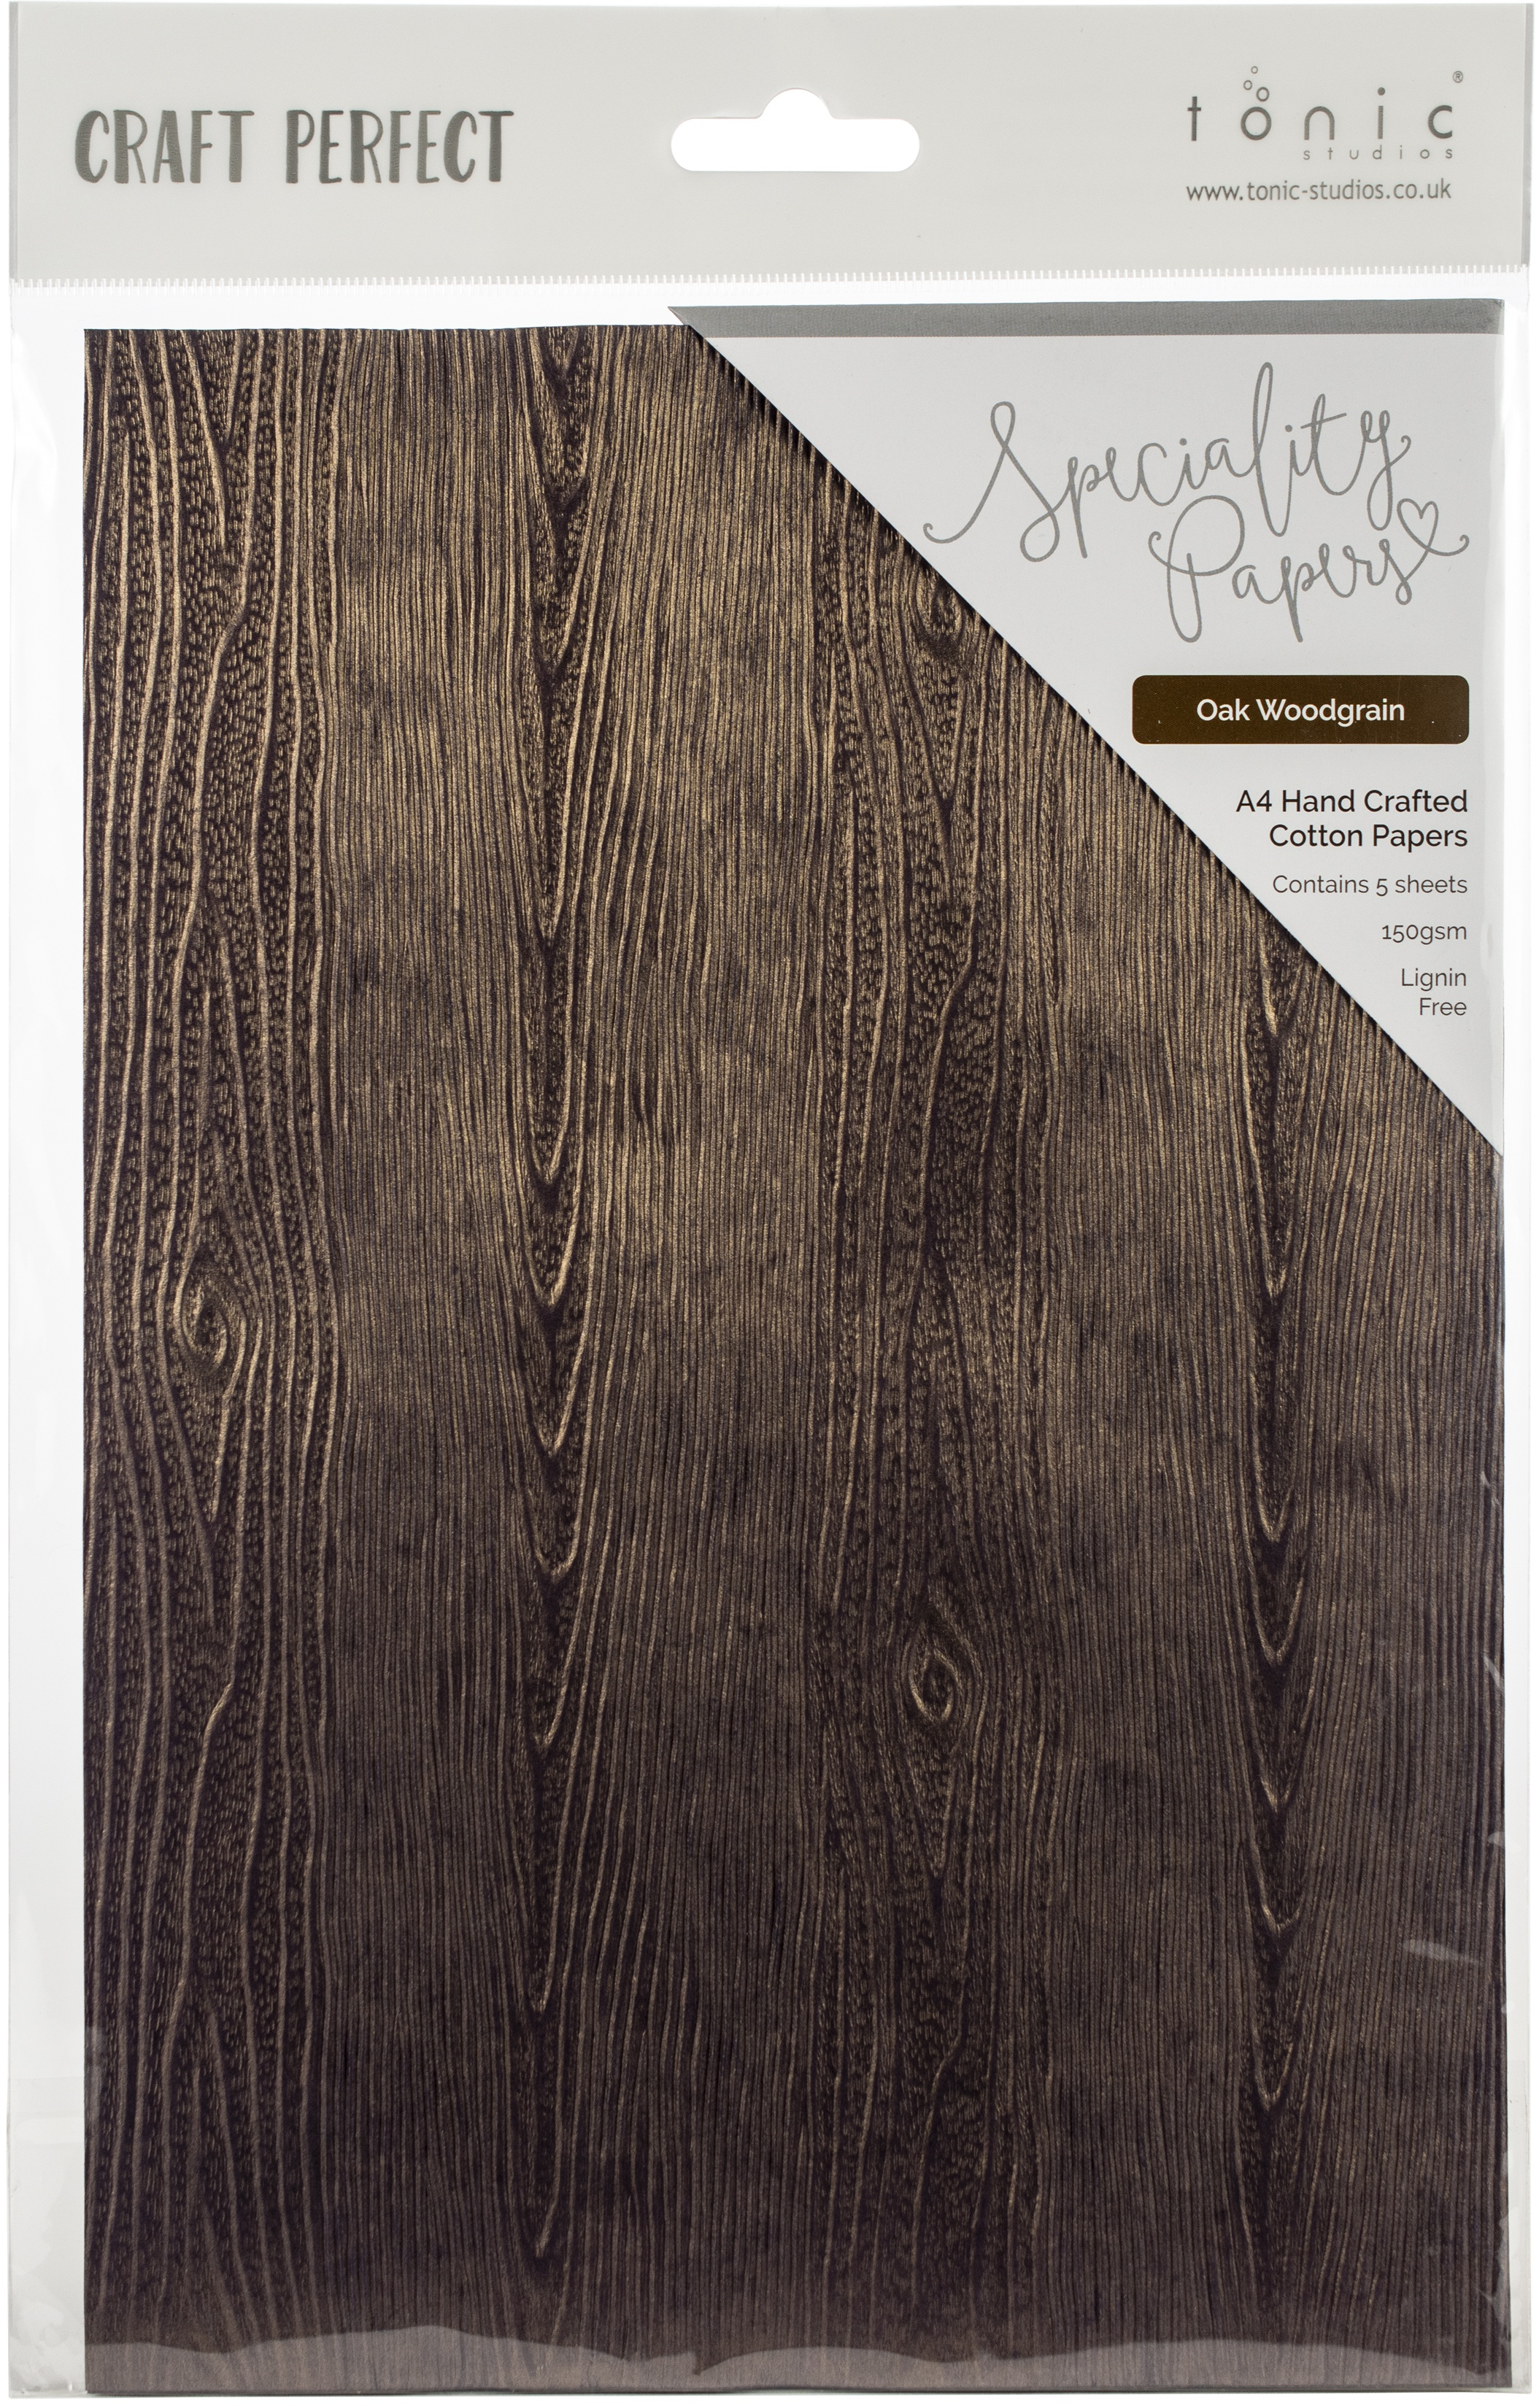 Handcrafted Embossed Cotton Papers A4 5/Pkg-Oak Woodgrain